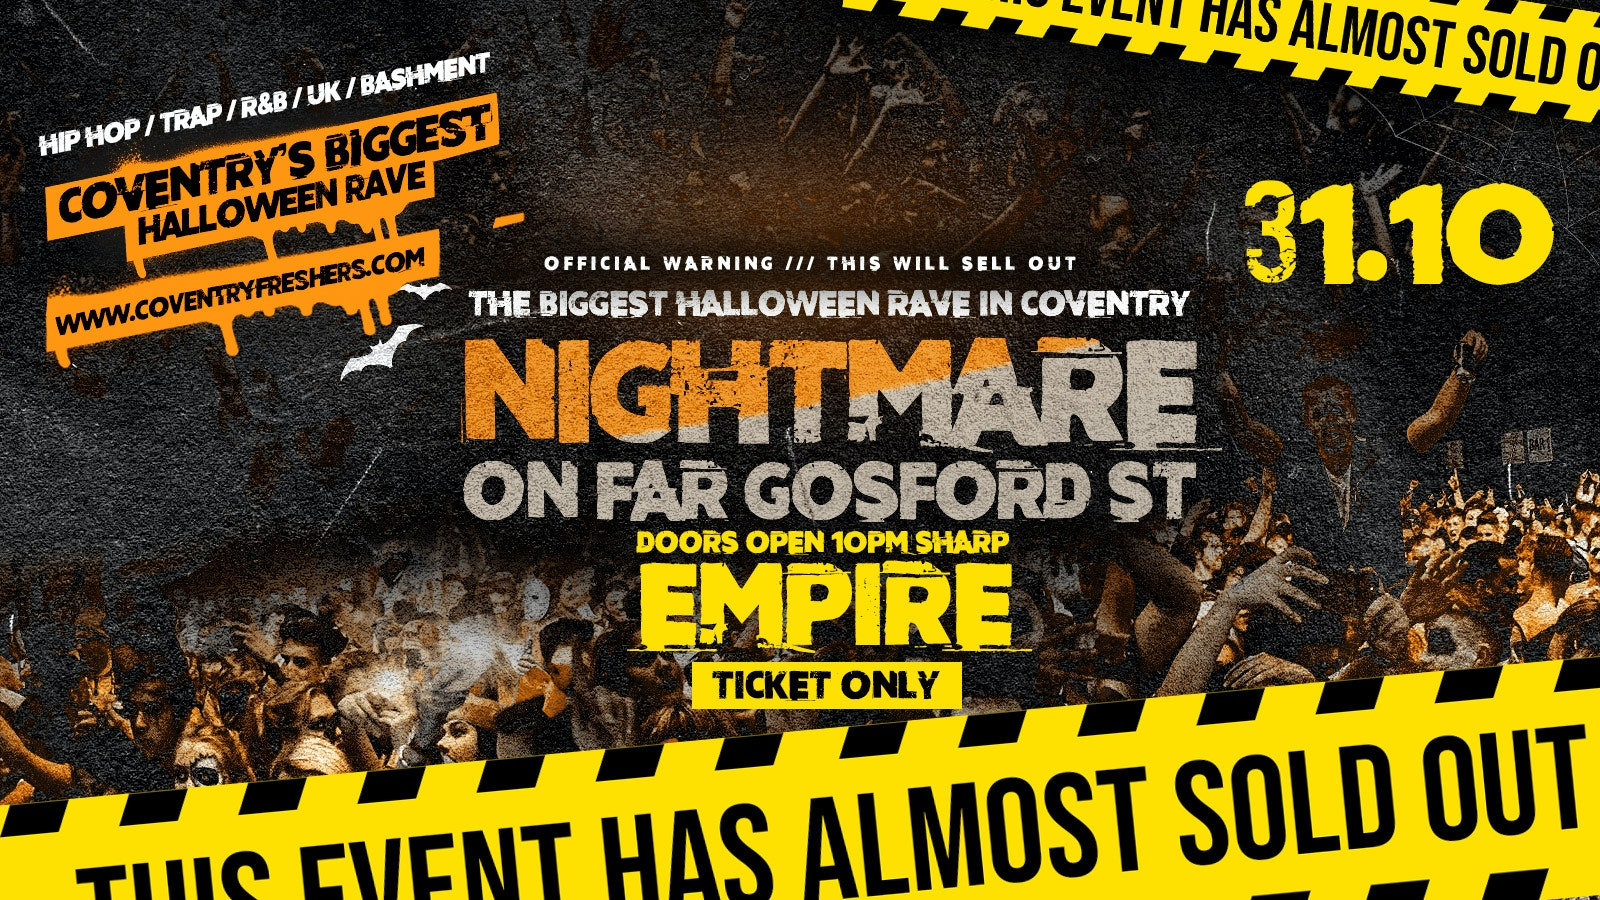 Nightmare on Far Gosford St at Empire – Coventry's Biggest Halloween Rave 2019